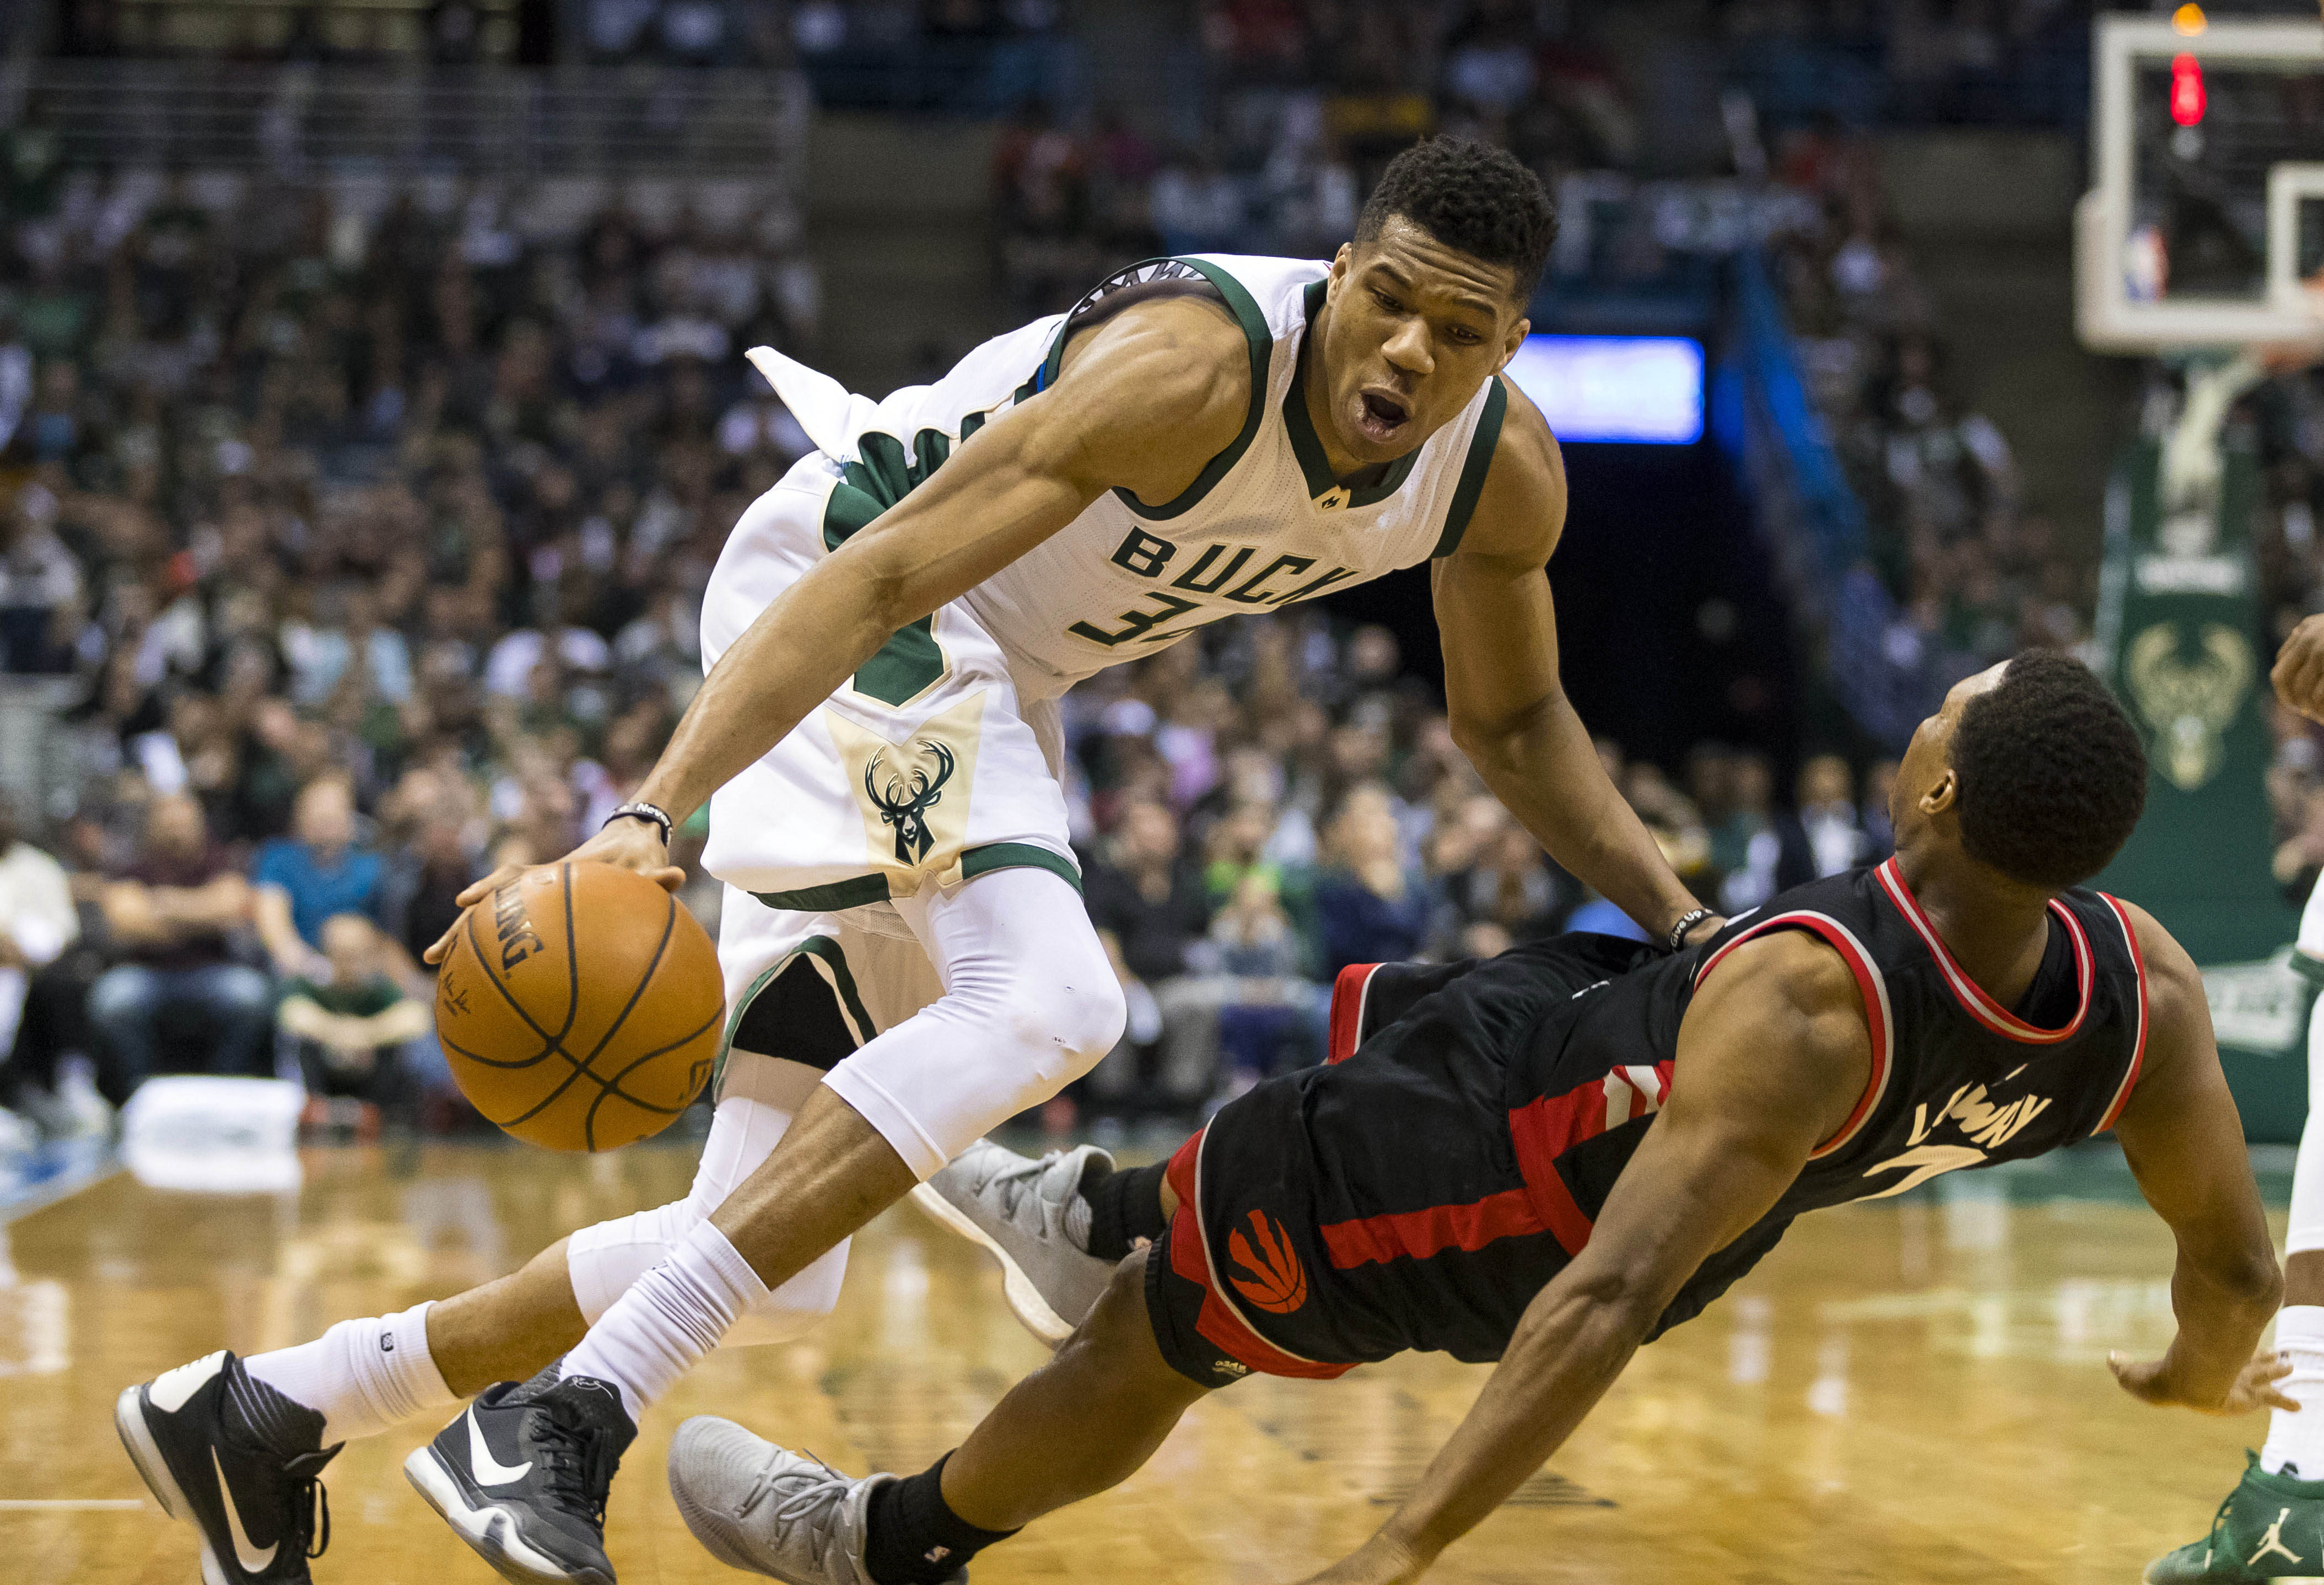 10025324-nba-playoffs-toronto-raptors-at-milwaukee-bucks